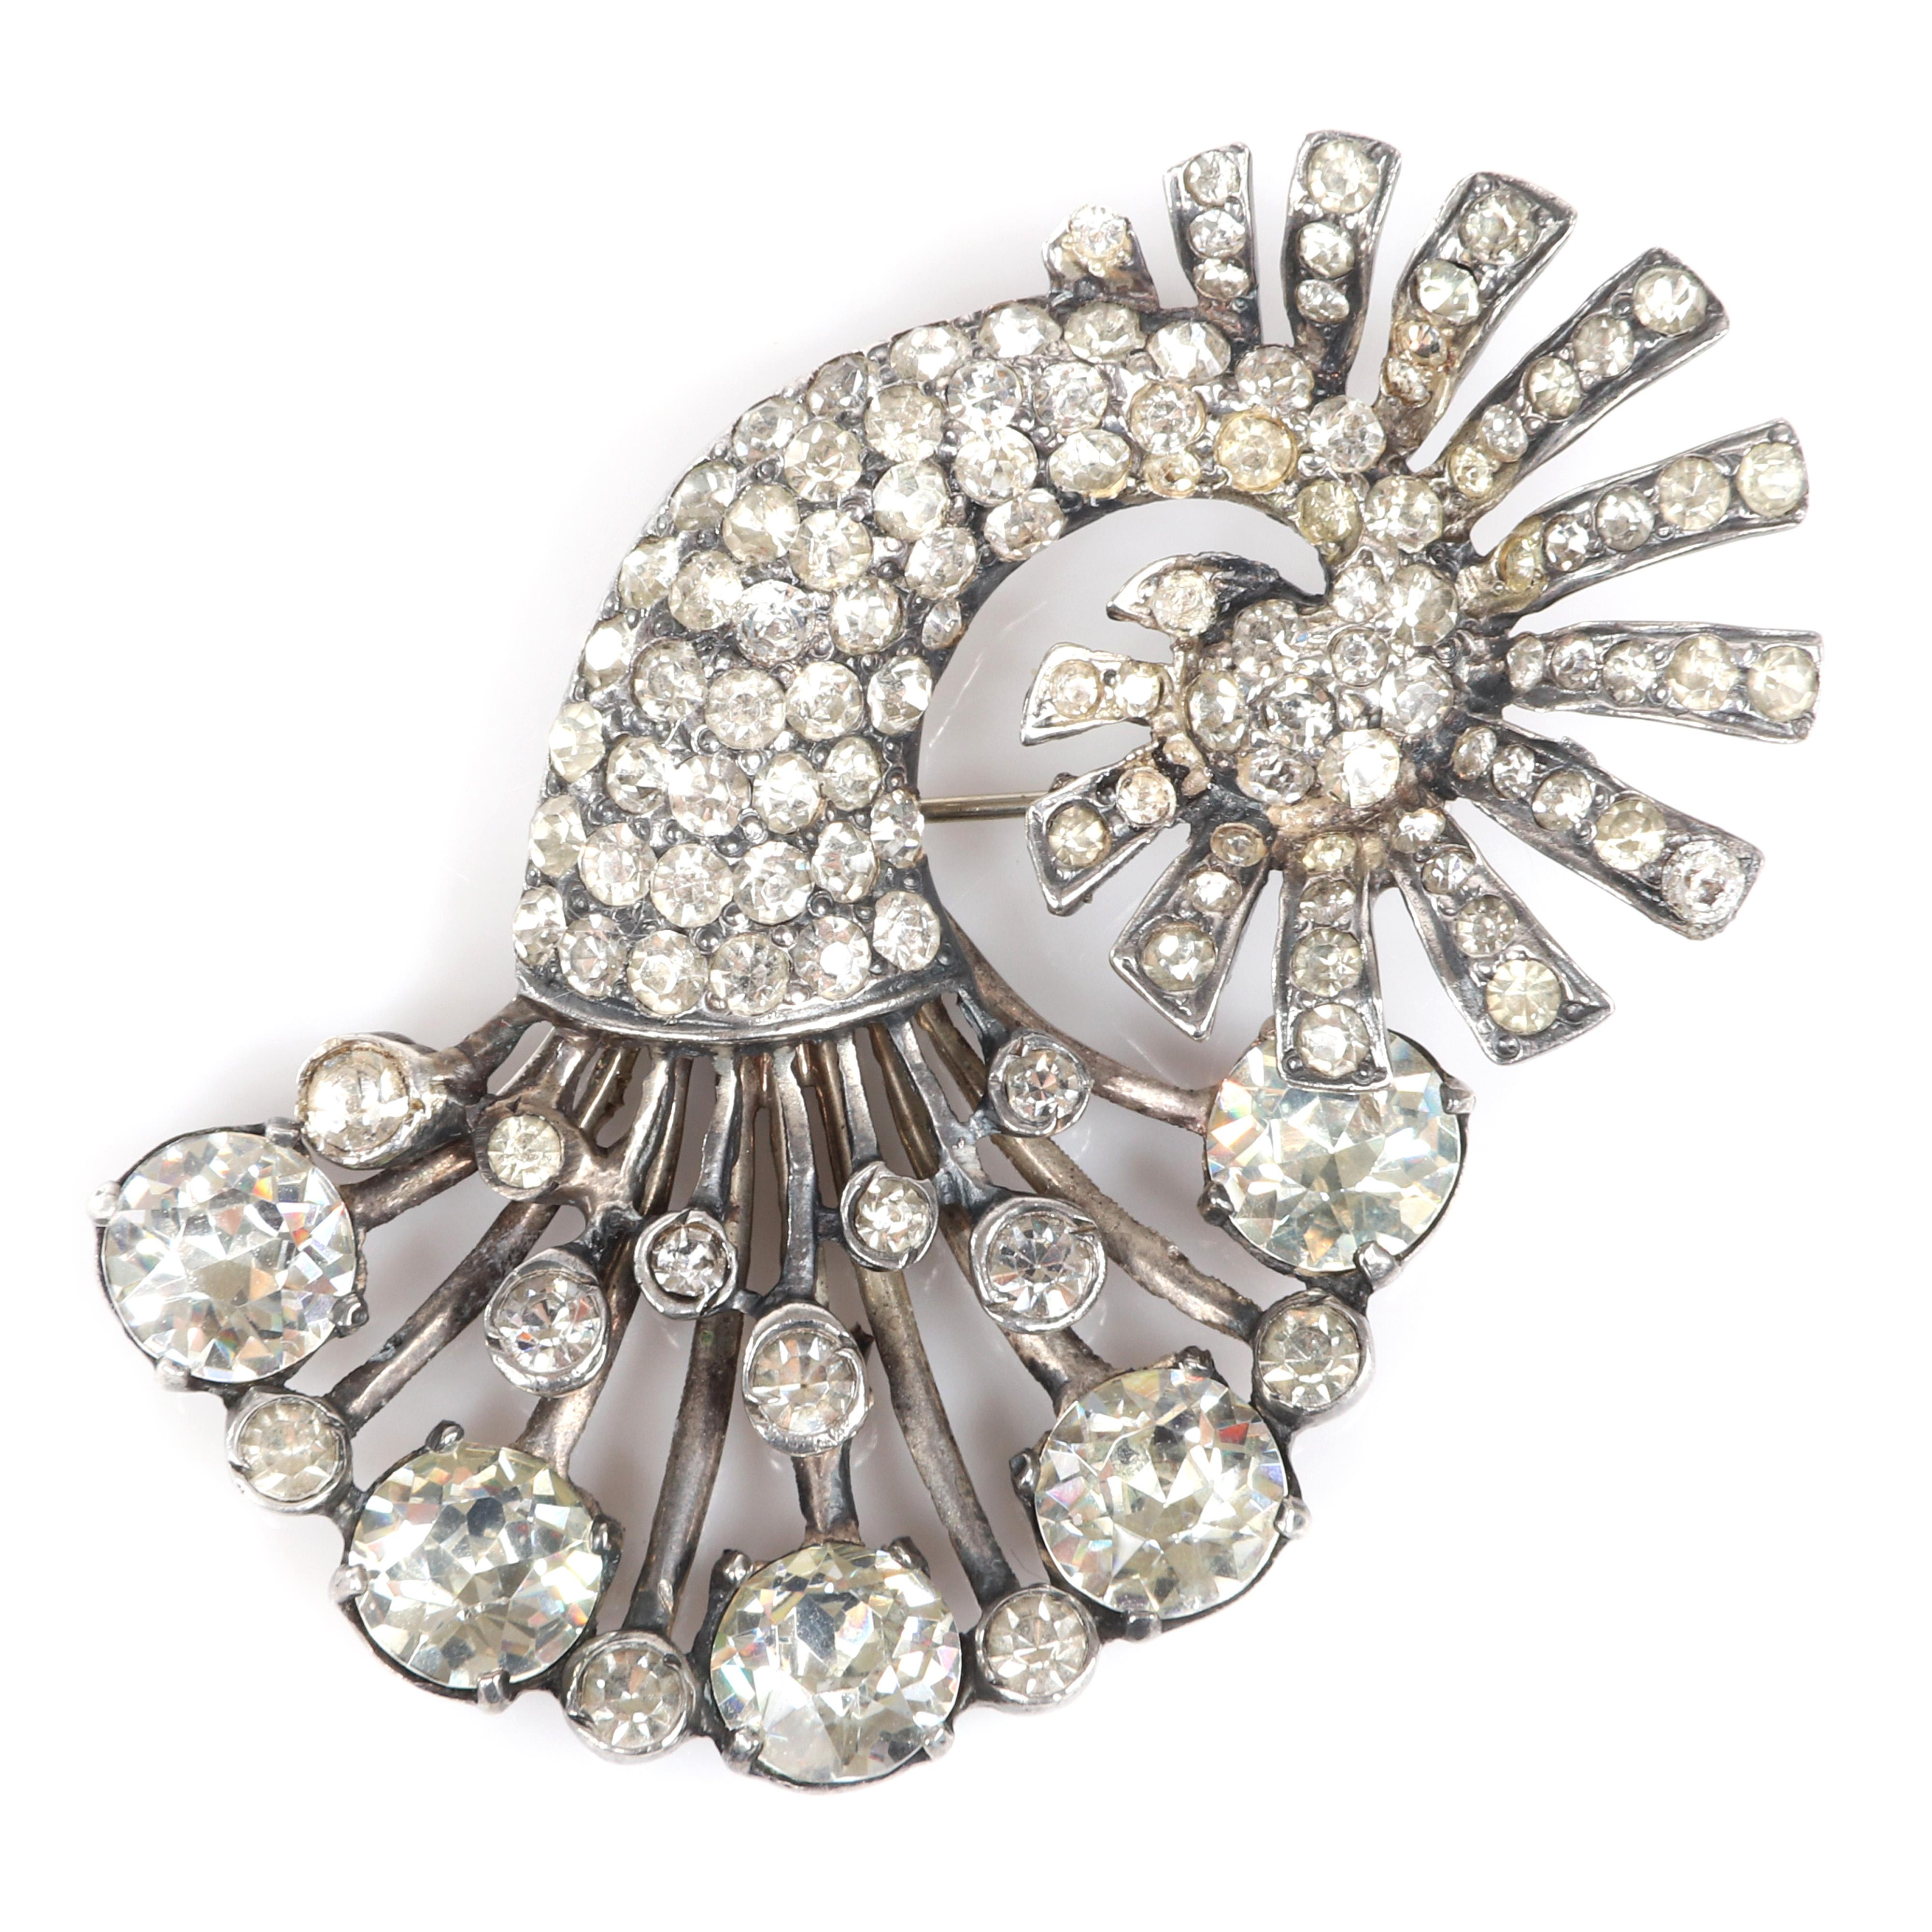 """Eisenberg Original sterling silver cornucopia spray pin with large round rhinestones, bezel-sets and pave details, with setter's mark. 2 1/2"""" x 1 3/4"""""""